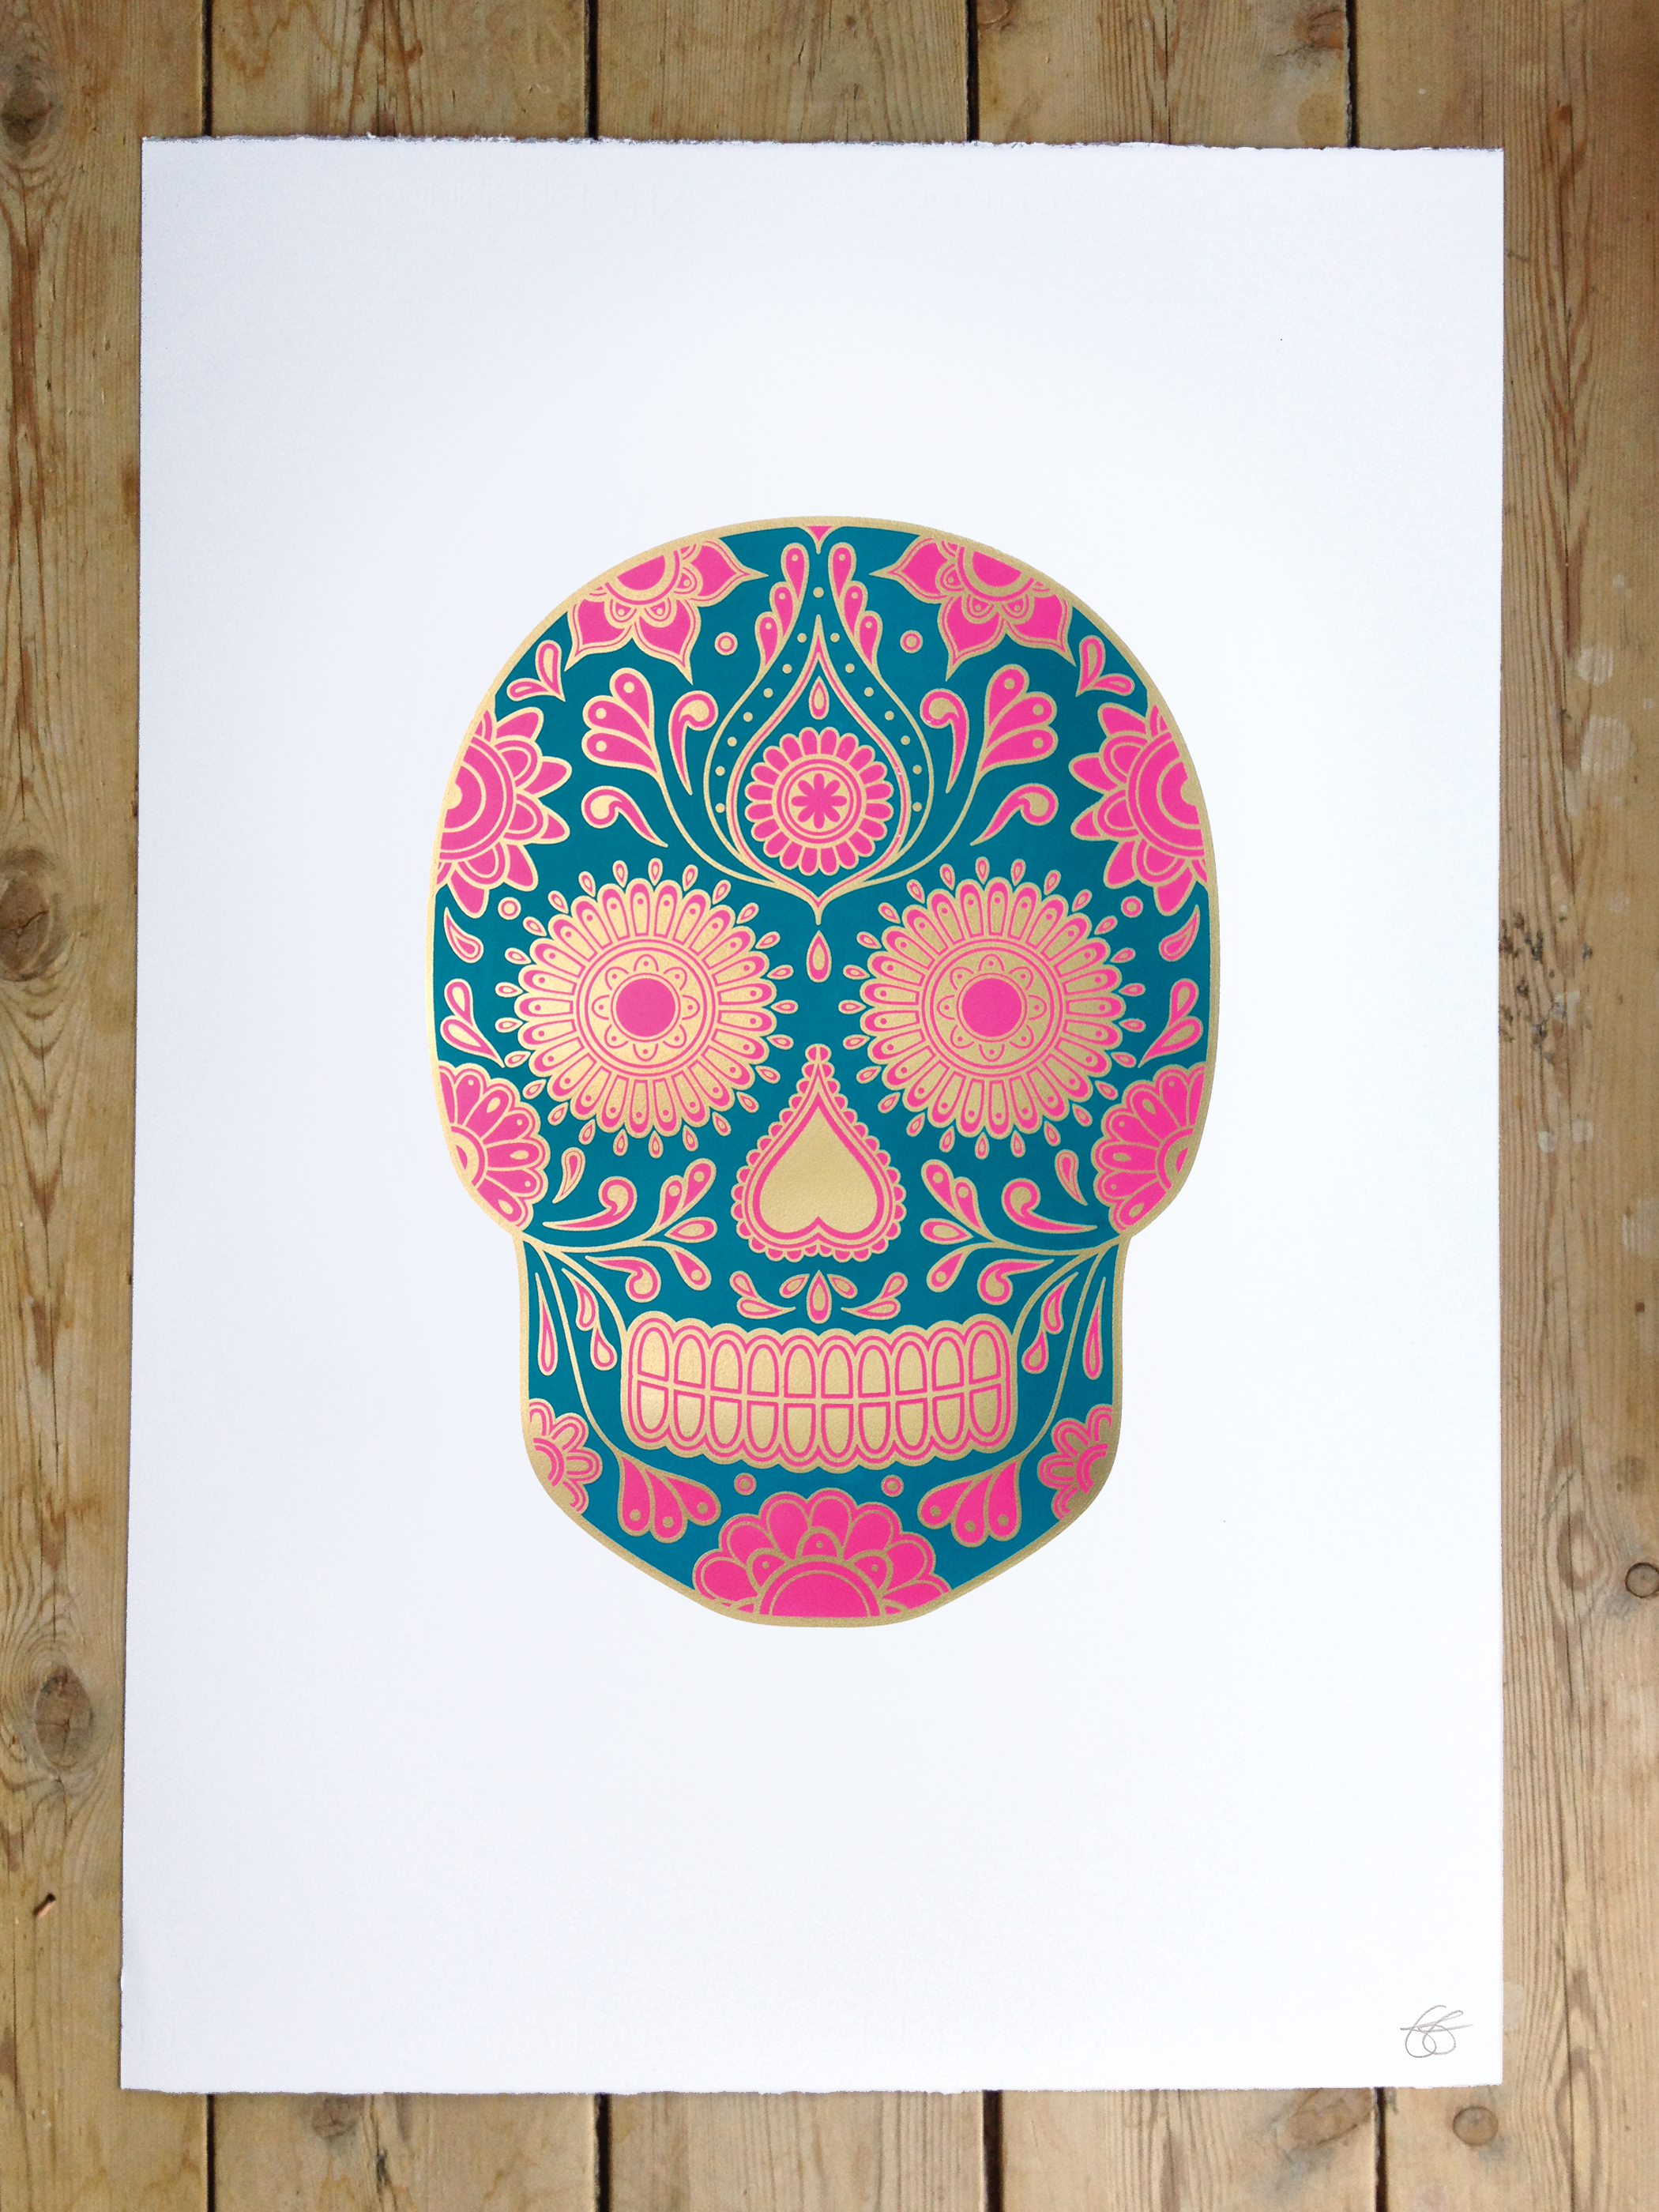 sugar skull wallpaper for home wallpapersafari. Black Bedroom Furniture Sets. Home Design Ideas